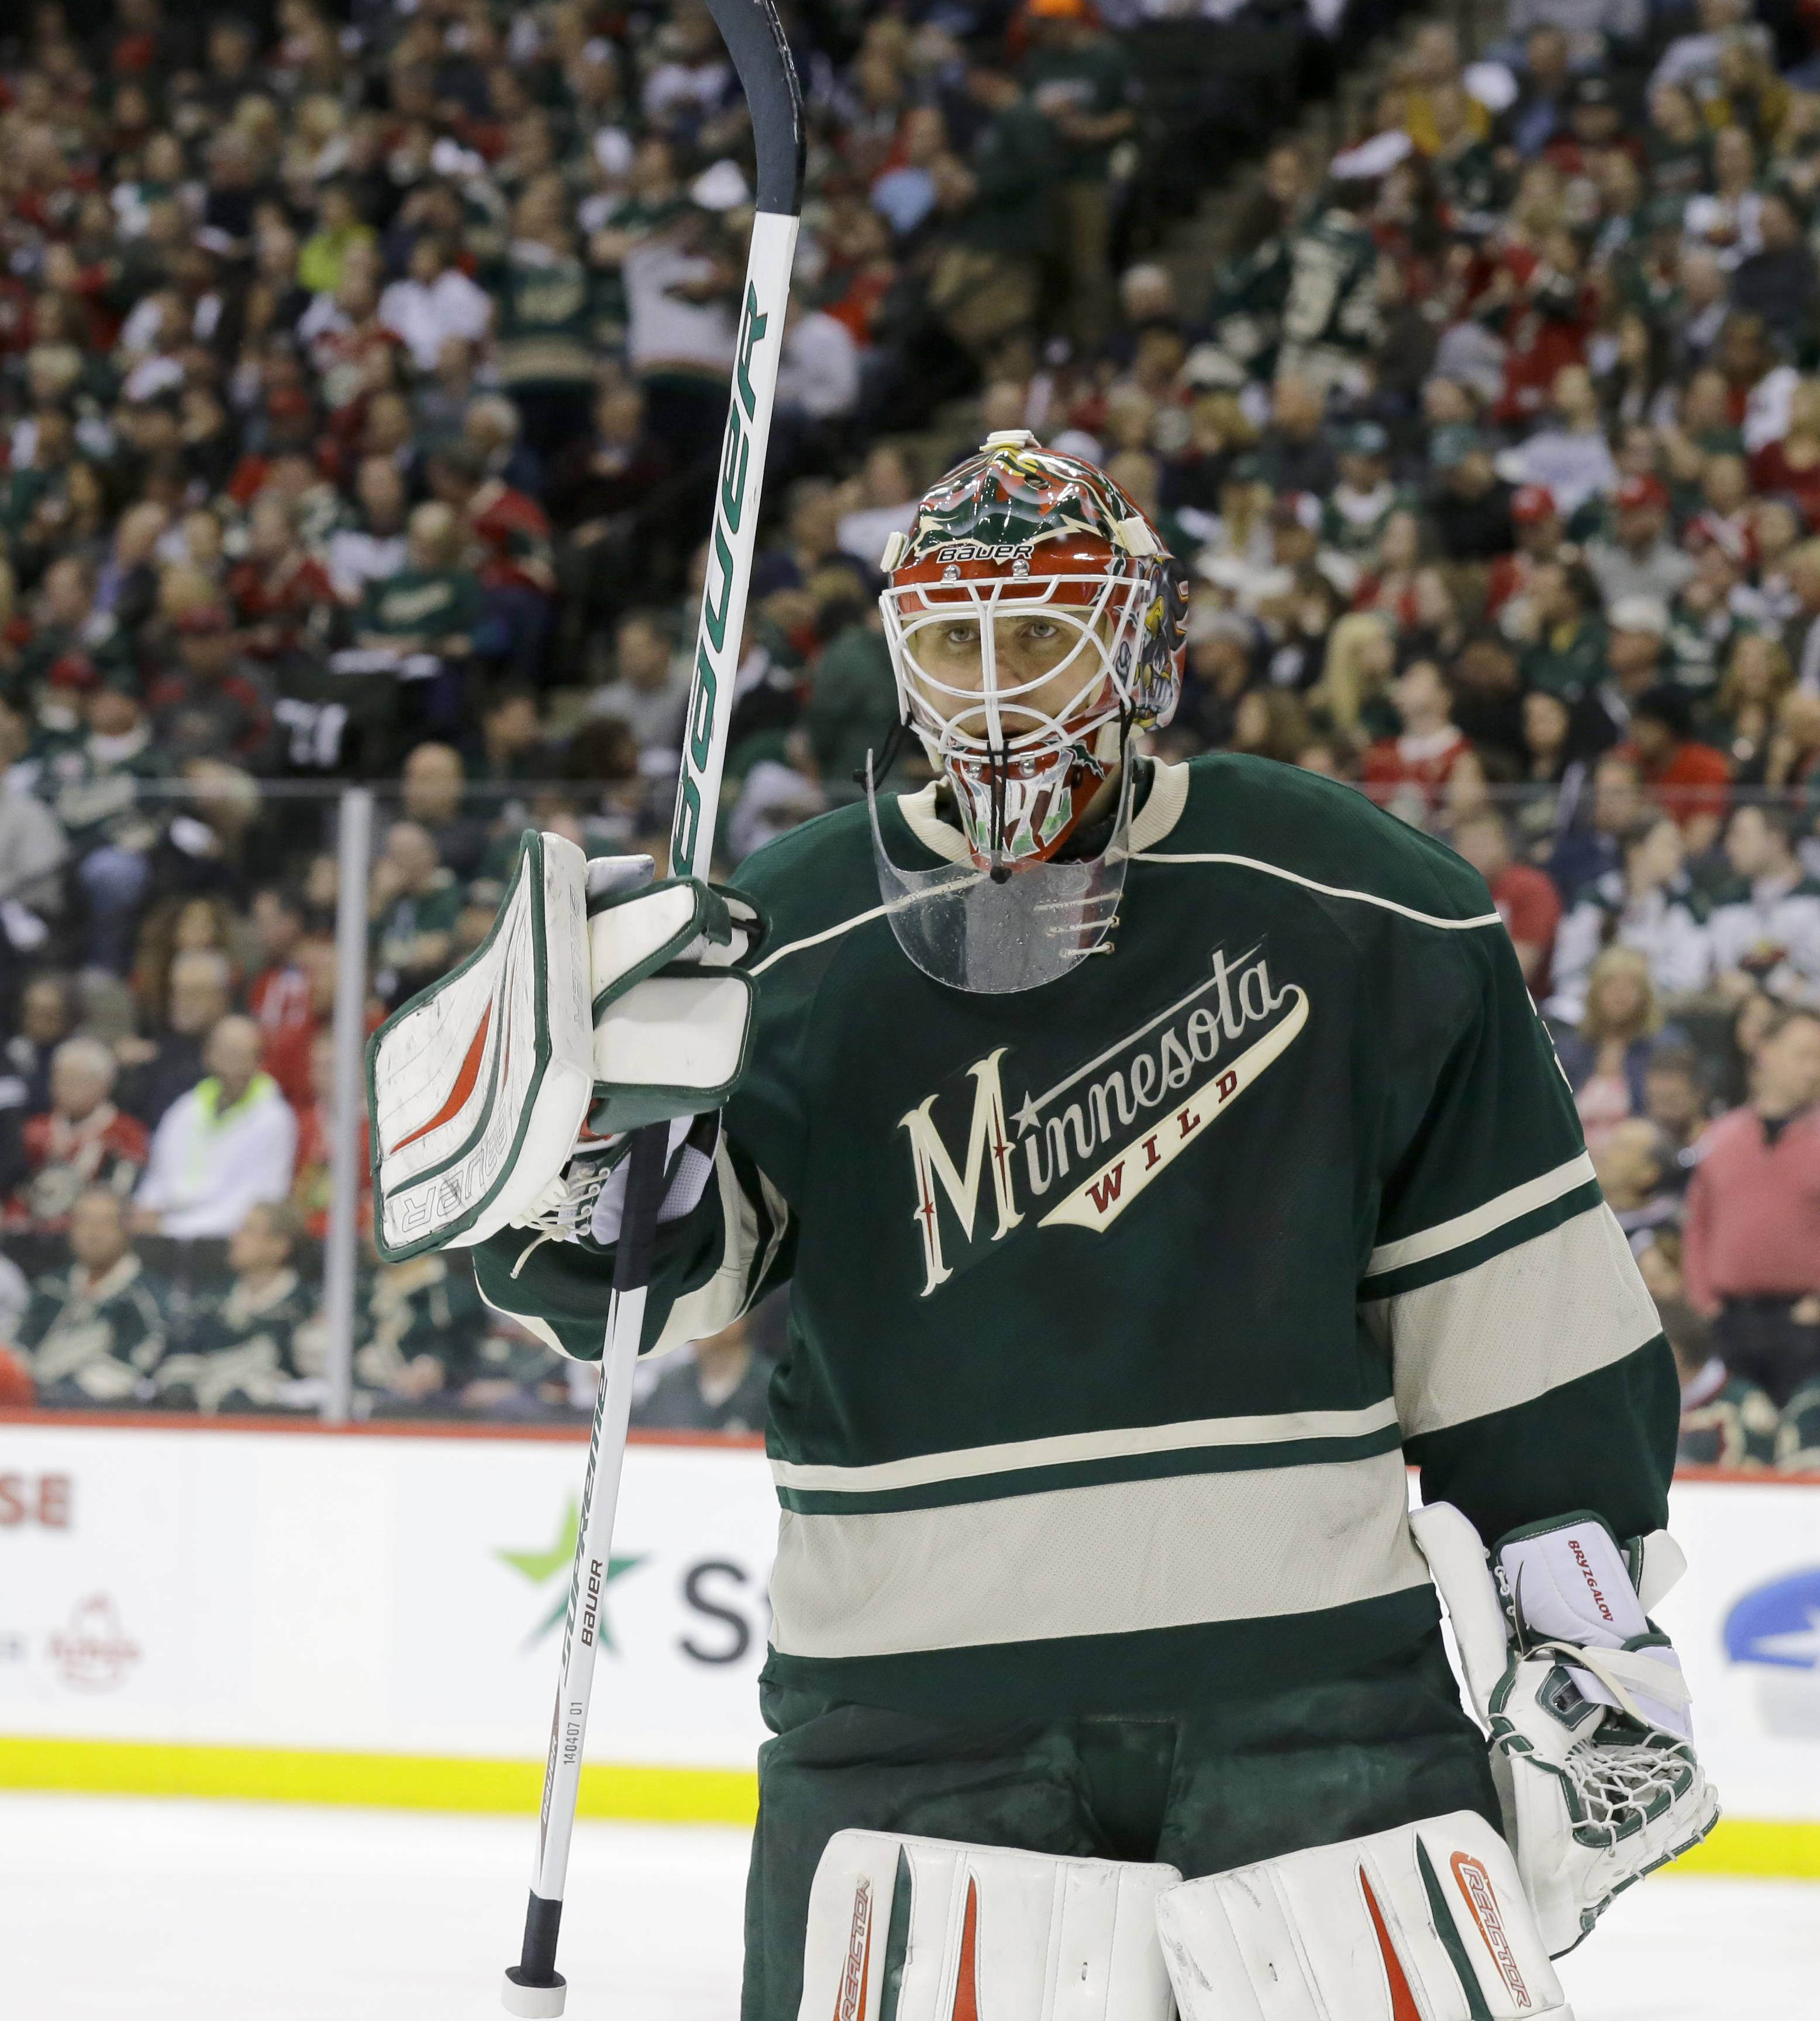 Bryzgalov's confidence boosted